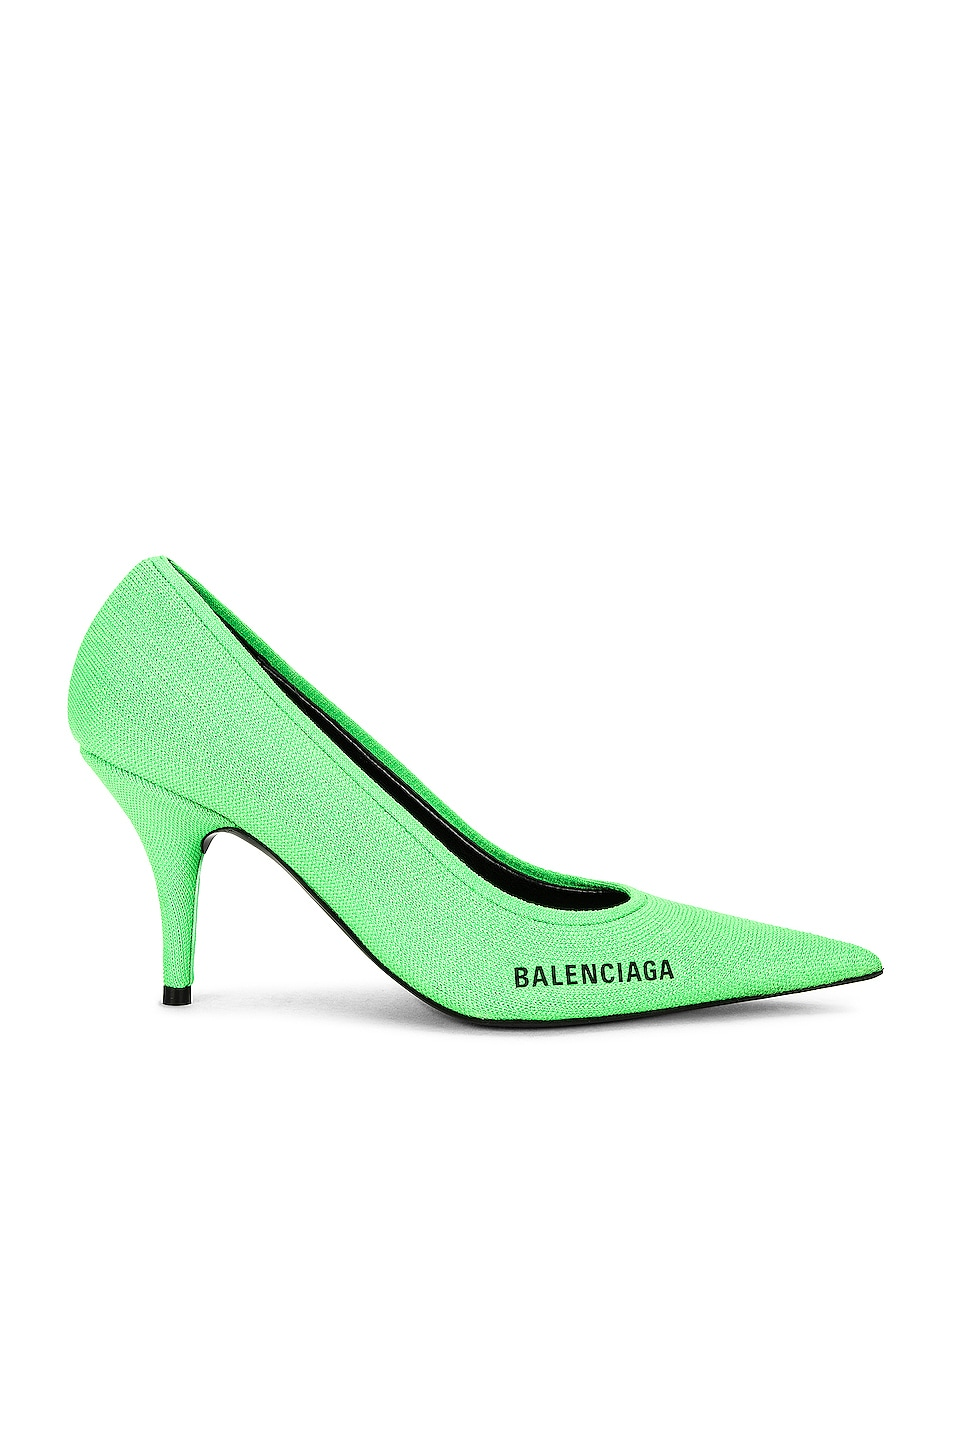 Image 1 of Balenciaga Knife Knit Pumps in Fluo Green & Black